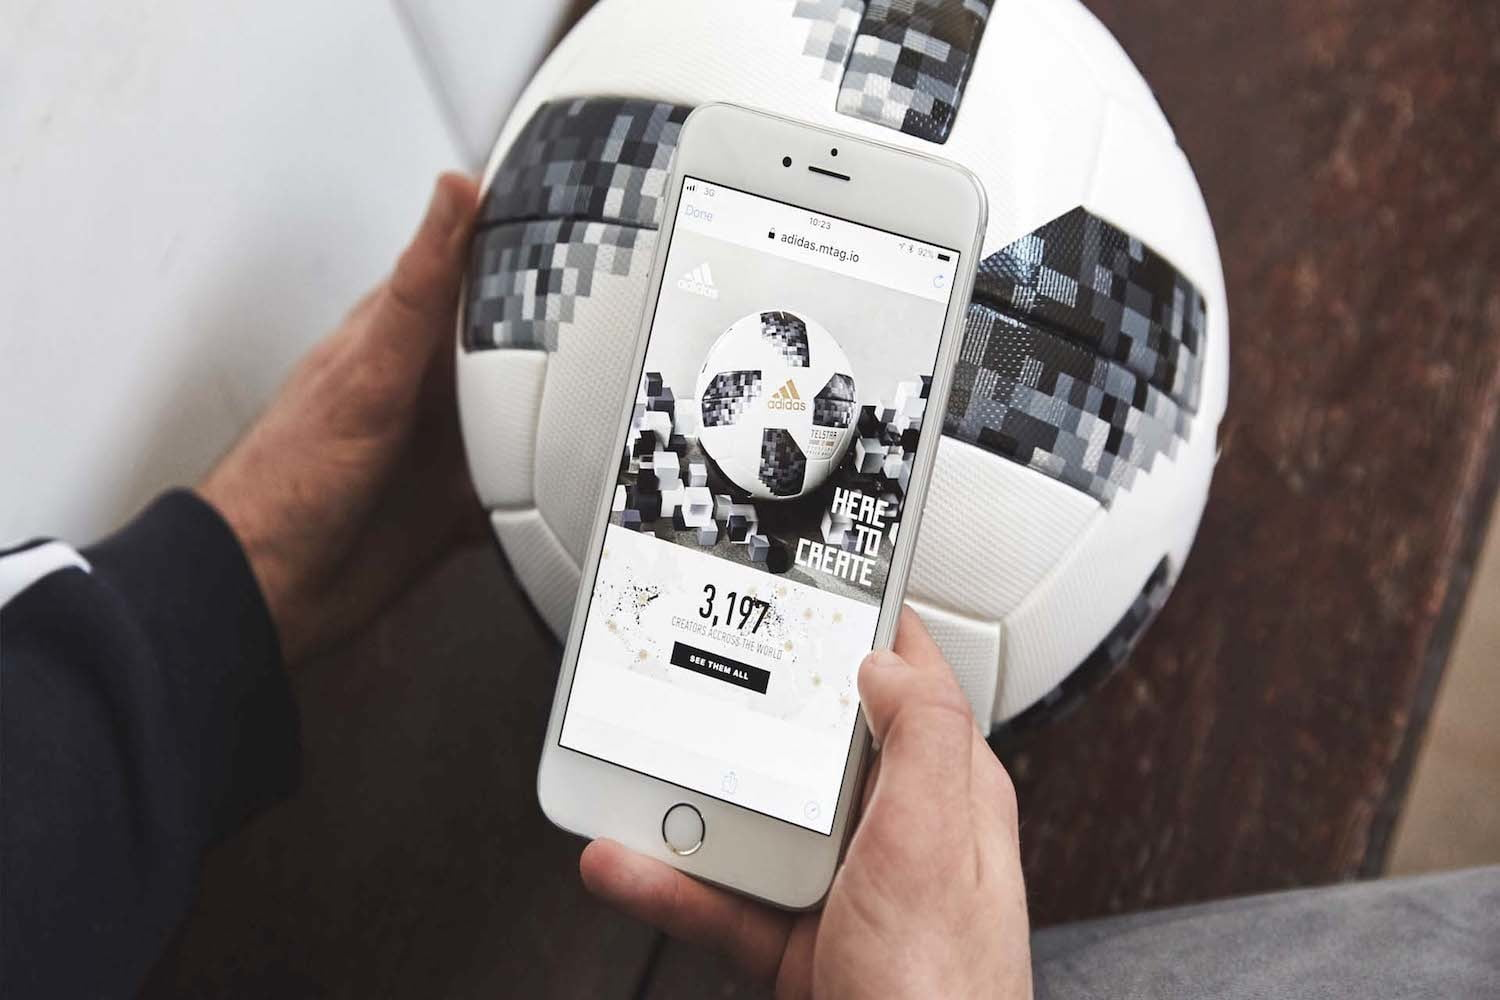 eabedd81e5 Adidas Debuts Its NFC-Equipped Soccer Ball at the World Cup | Digital Trends